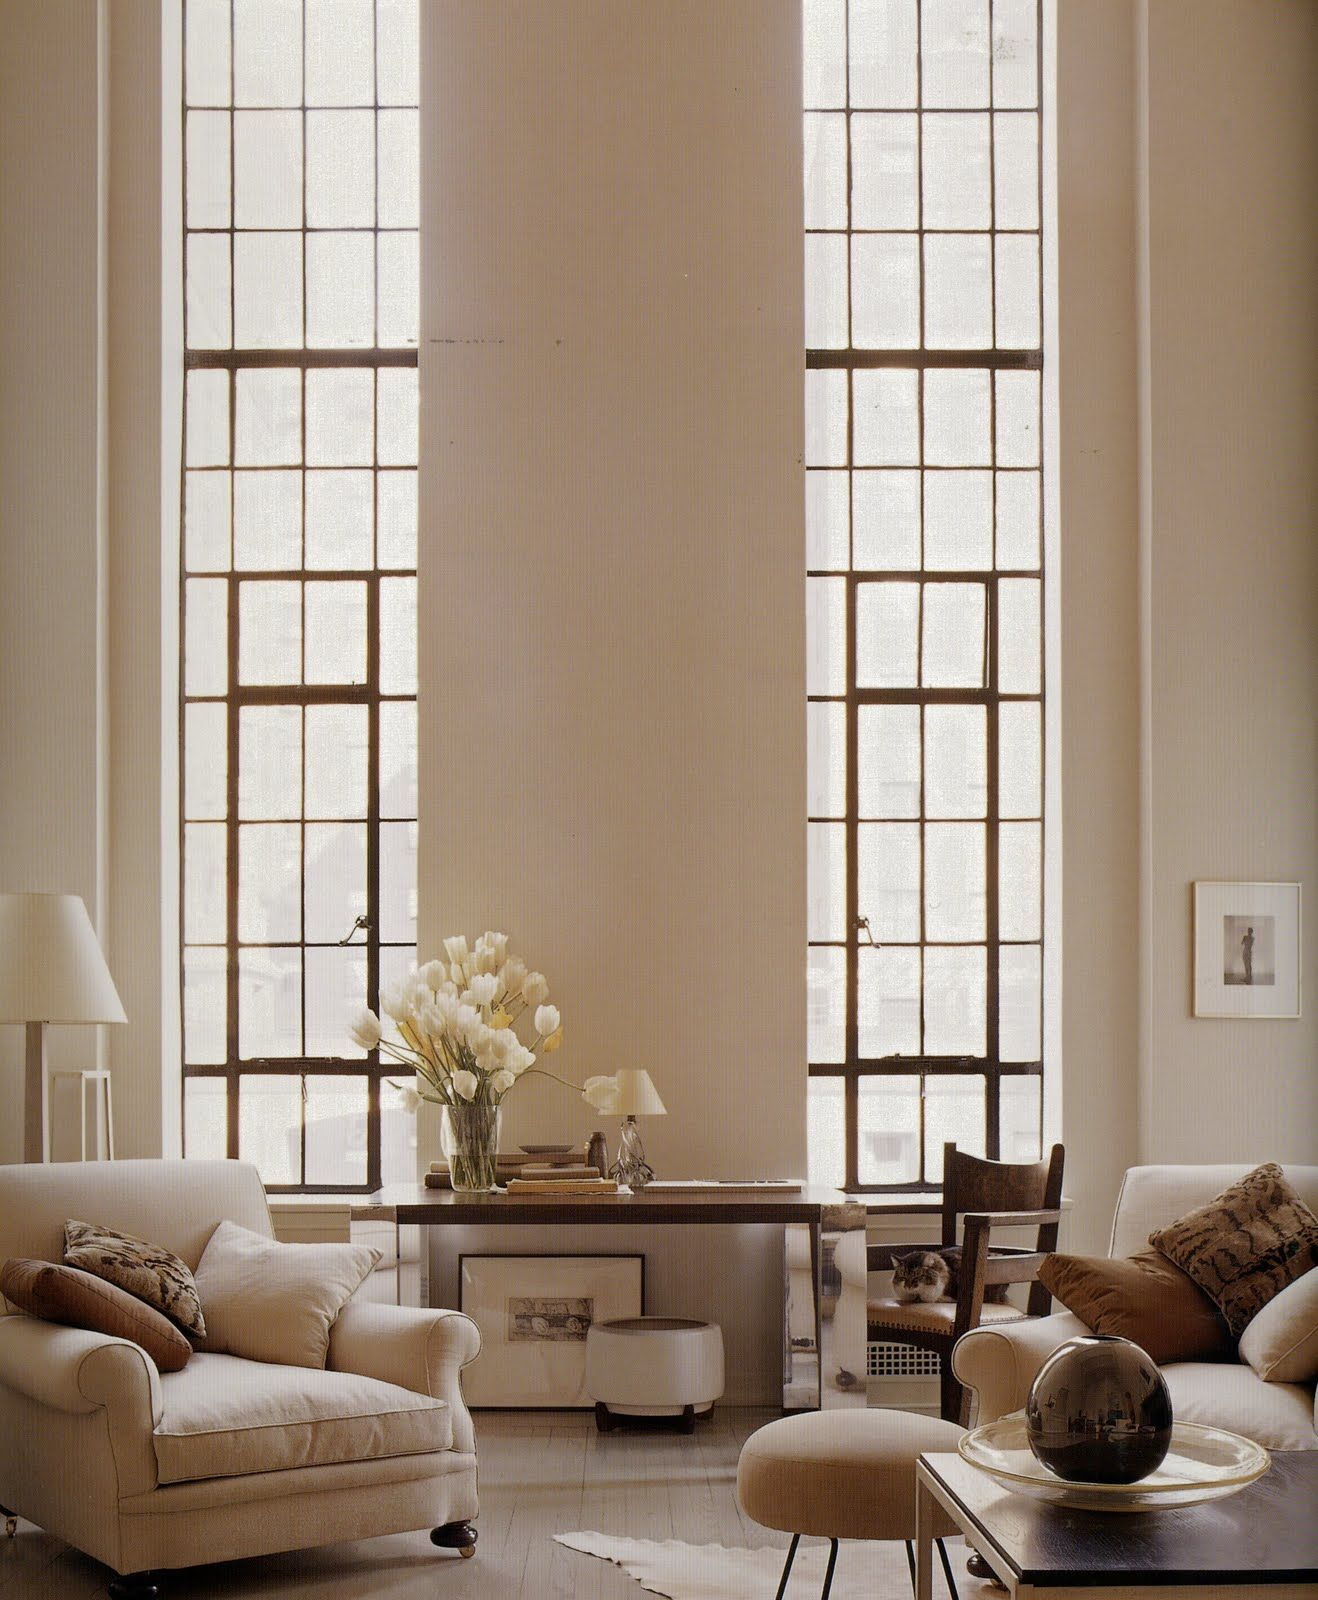 Decoraciones Hogar Beautiful Tall Windows Makes The Room So Light